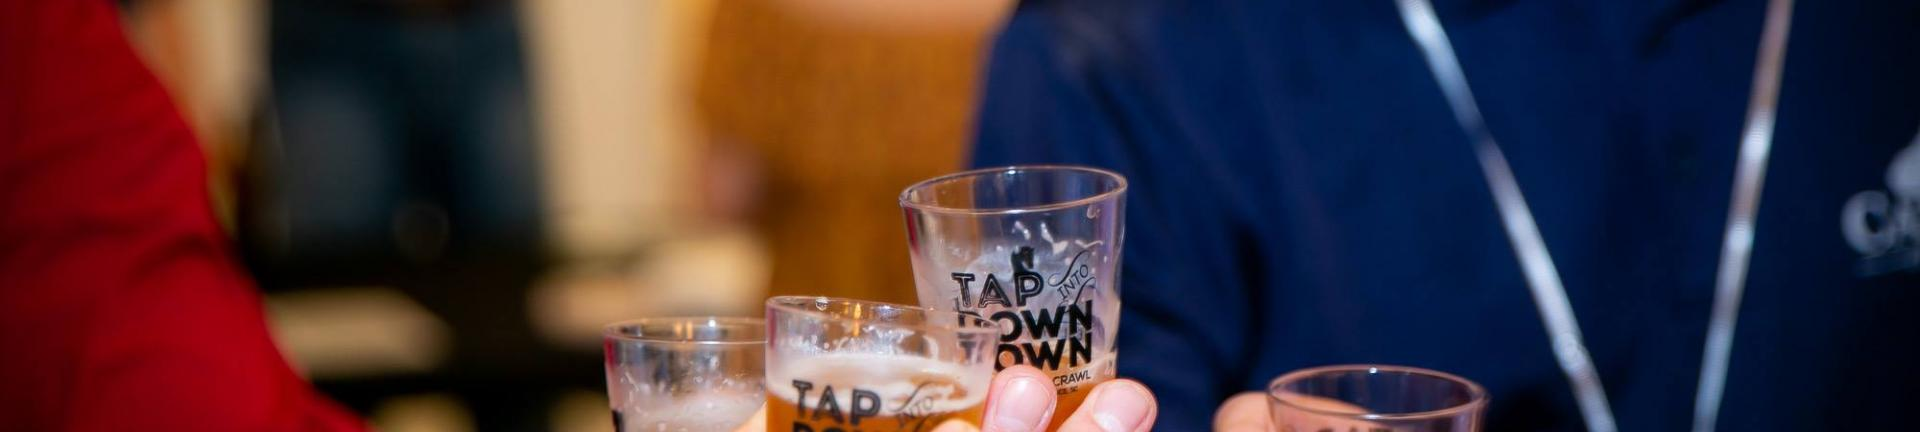 Tap into Downtown Photo by True Light Photography